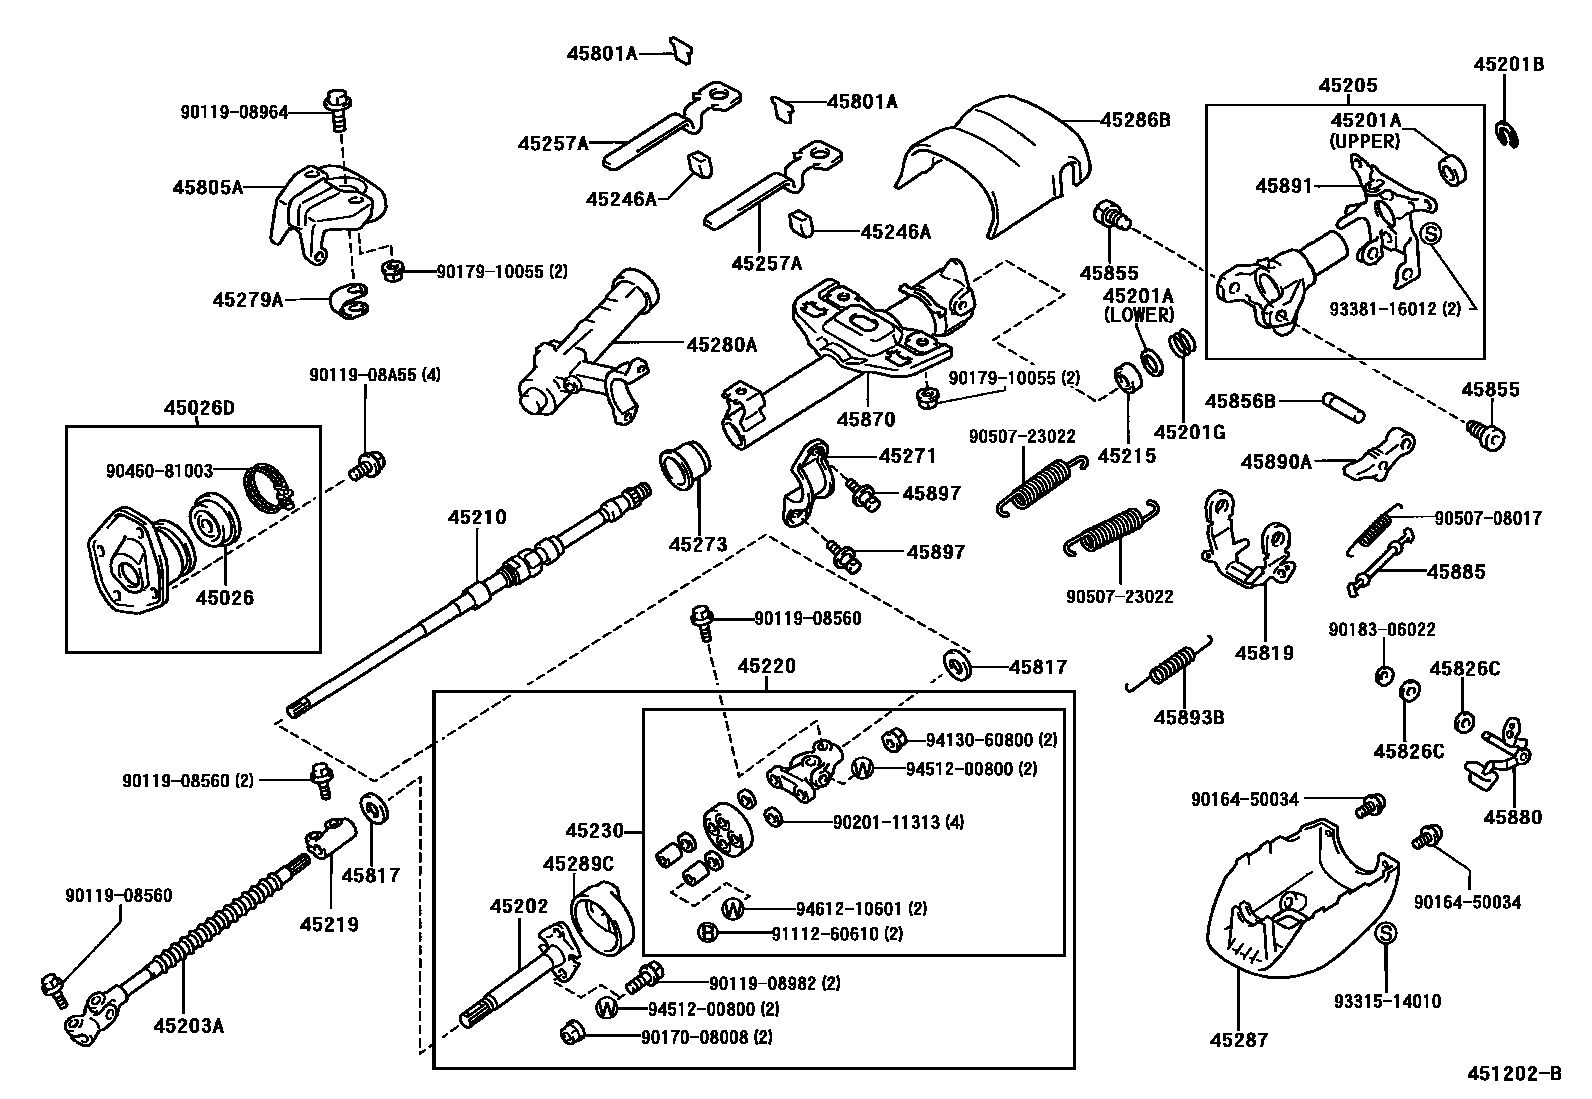 2004 Chrysler Sebring Fuse Box moreover 2002 Lexus Rx300 Parts Diagram further 2014 Nissan Sentra Sv Stereo Wiring Diagram in addition Ford E Series E150 Fuse Box Diagram together with Nissan Wiring Diagram 401468592. on radio wiring diagram 2000 nissan altima